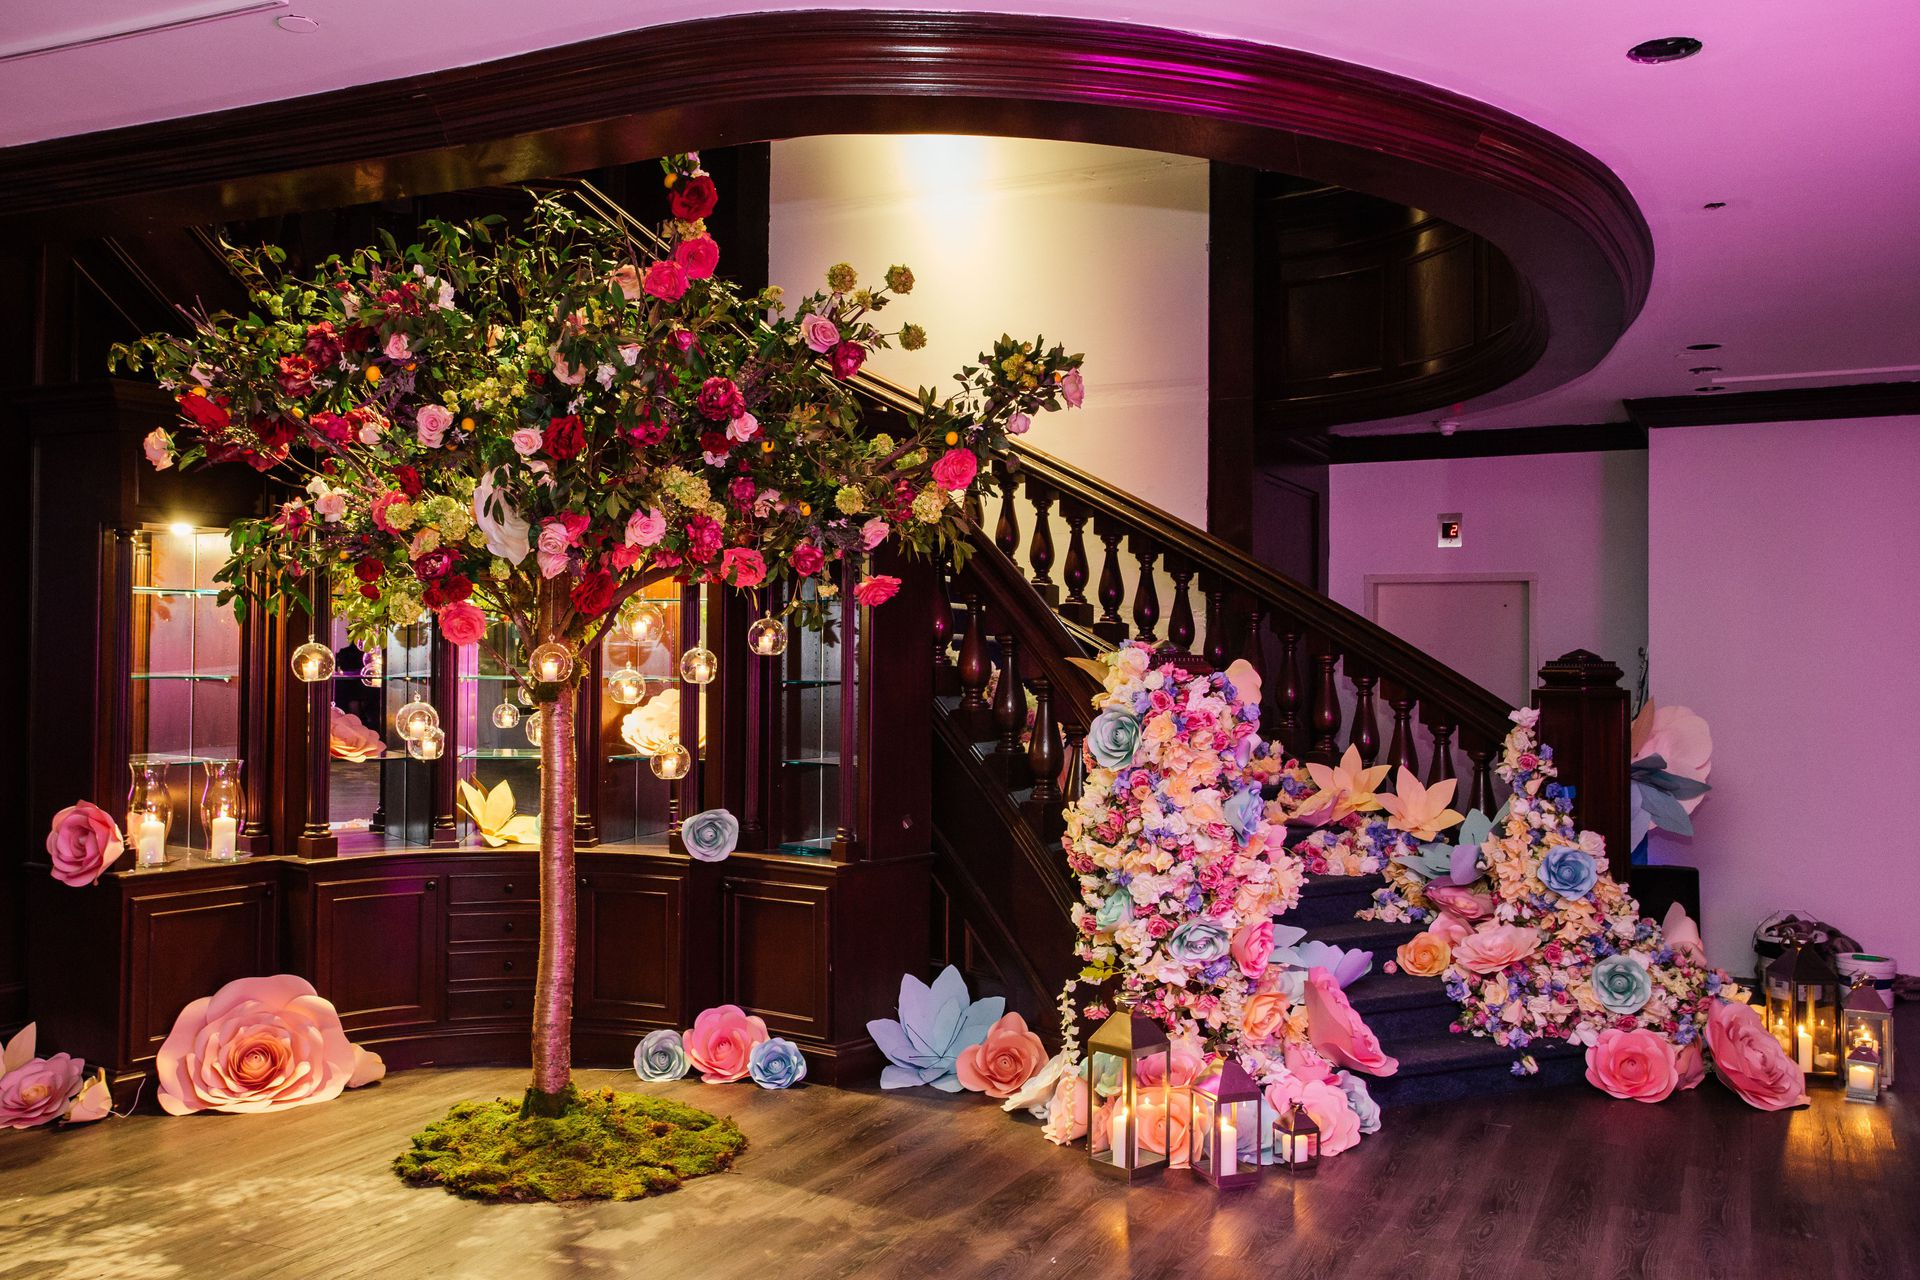 Staircase with decorative paper flowers next to a free standing tree with flowers and hanging ornaments